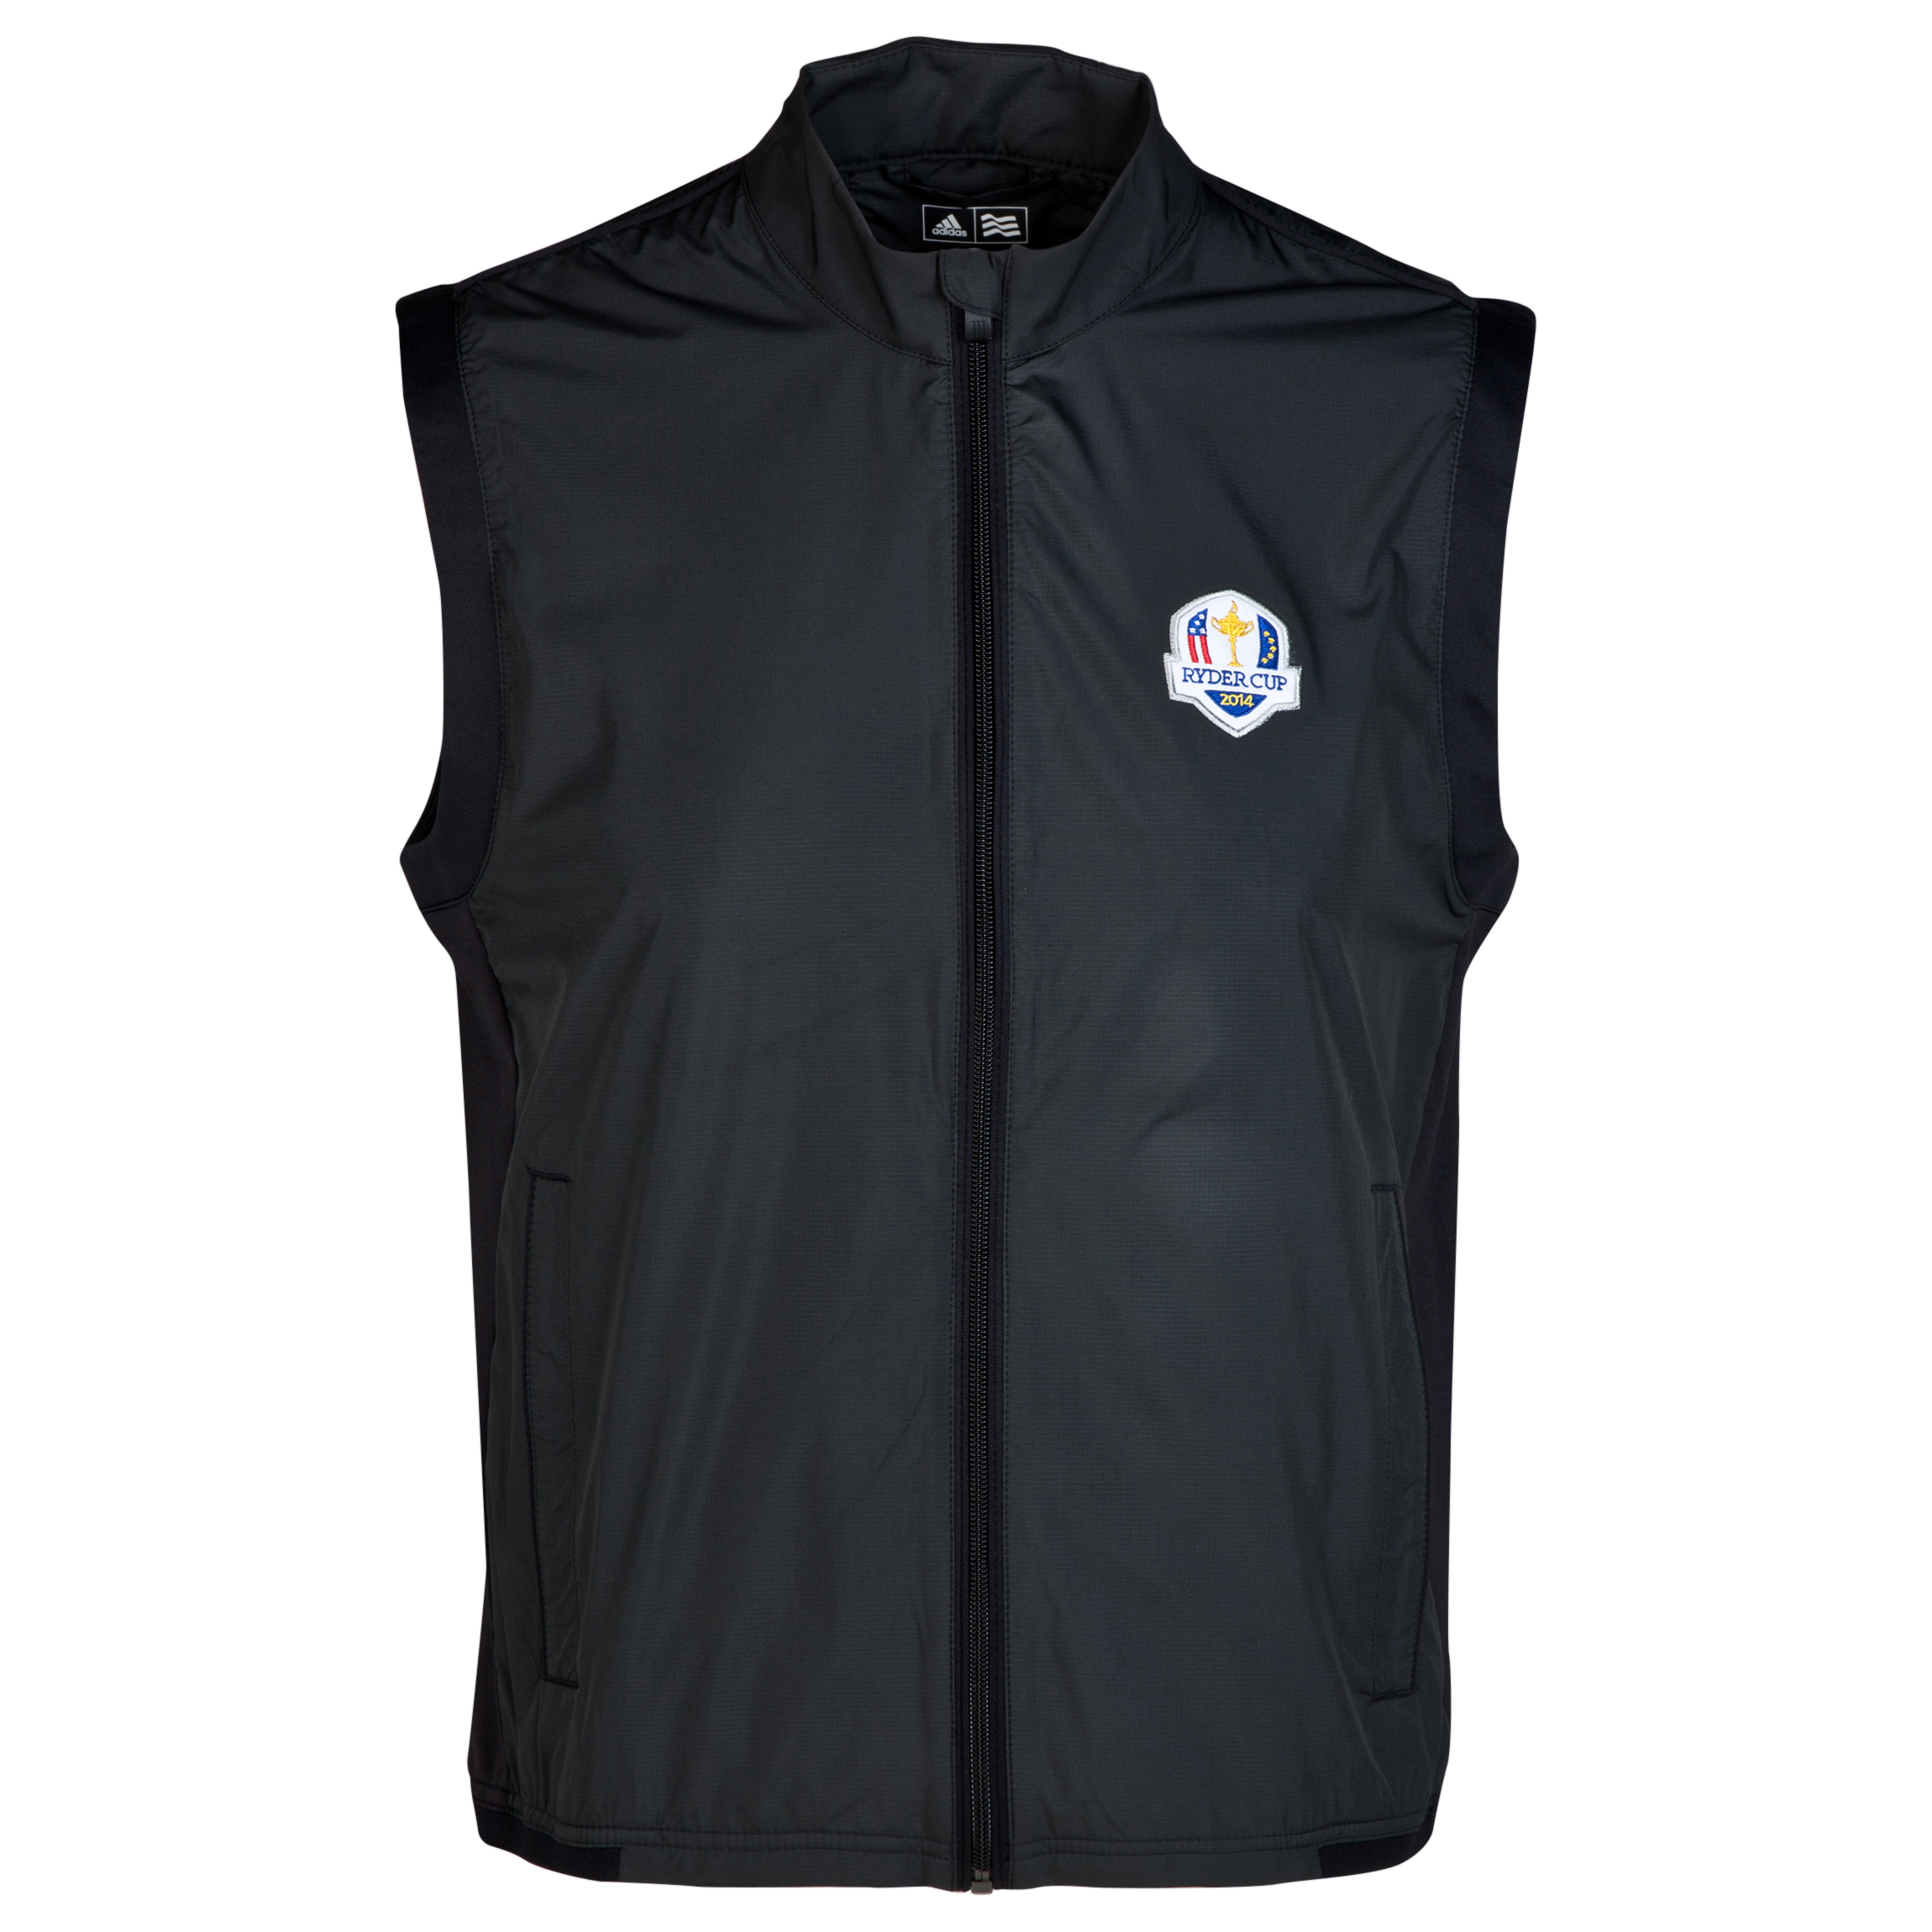 The 2014 Ryder Cup adidas ClimaProof Stretch Wind Vest Black